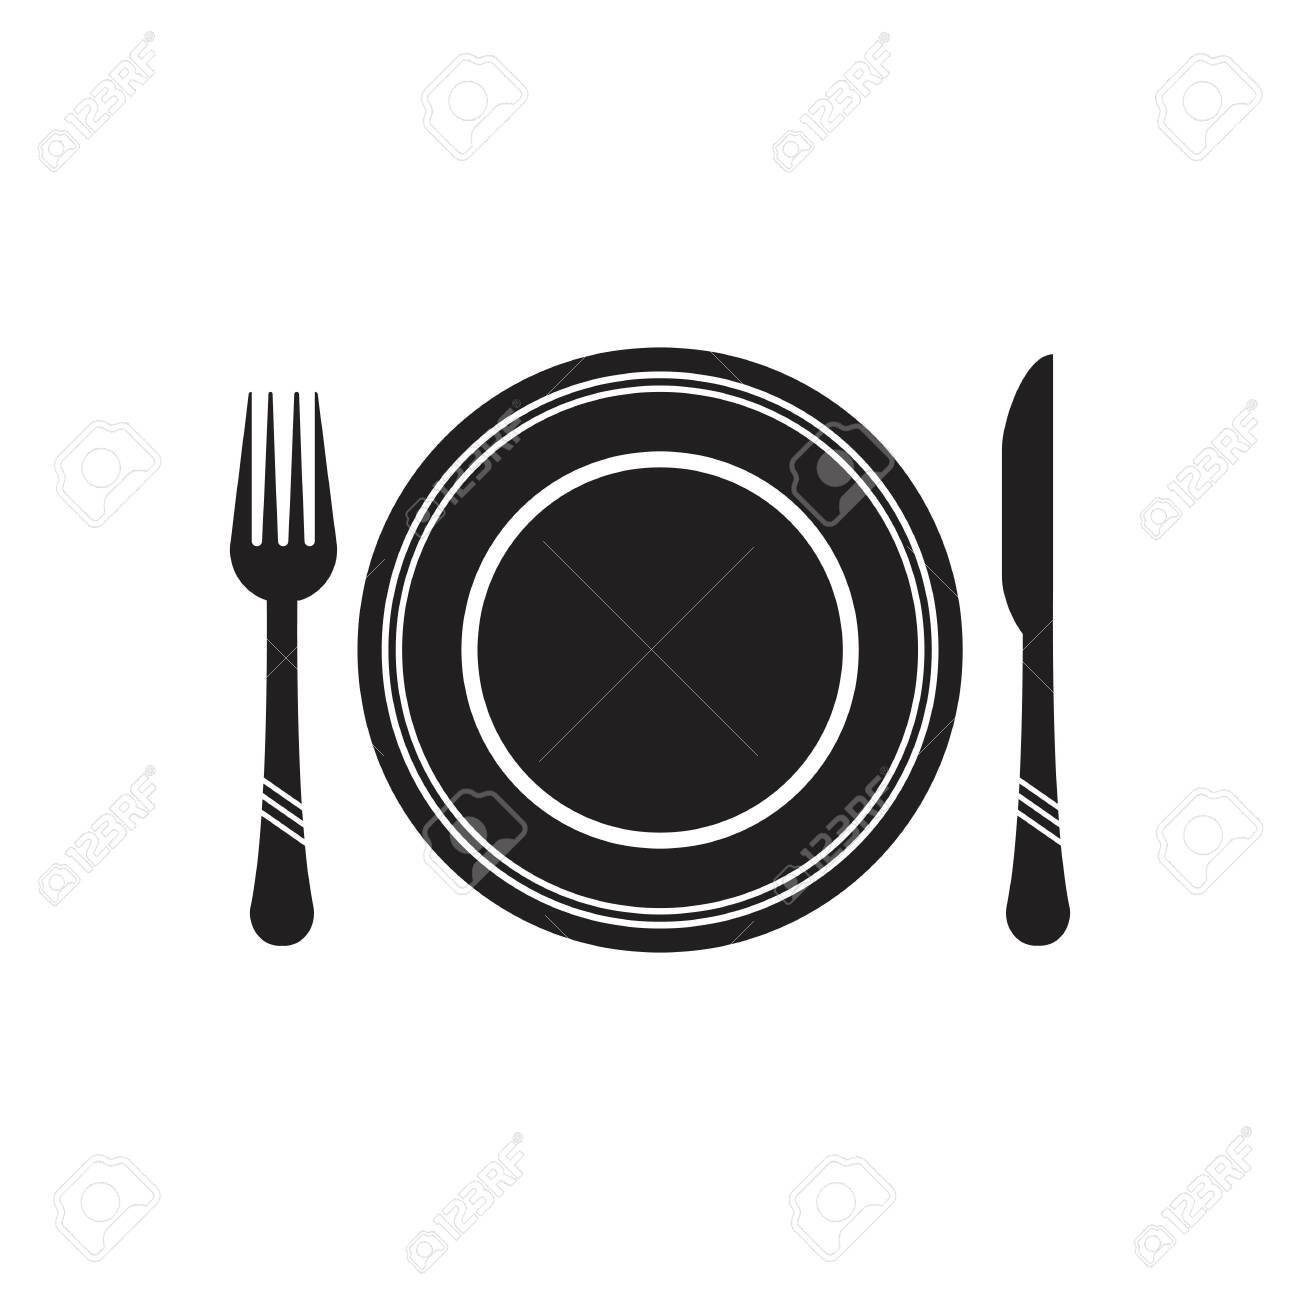 Cutlery vector icon illustration signCutlery and Kitchen Set Icon Design Template - 134369496